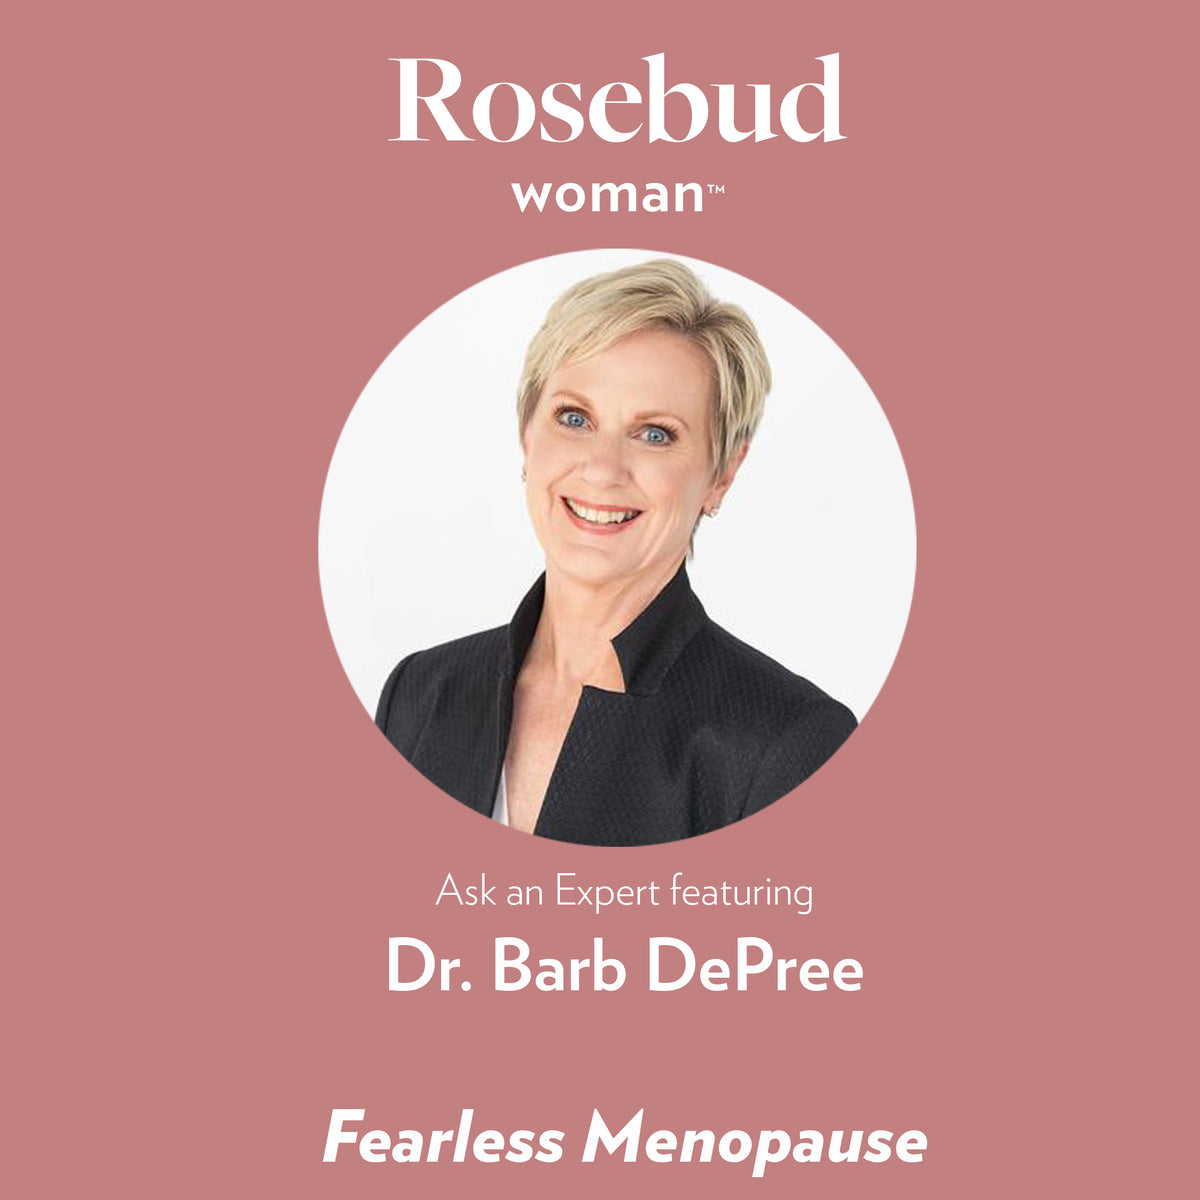 Fearless Menopause: An Interview with Dr. Barb DePree